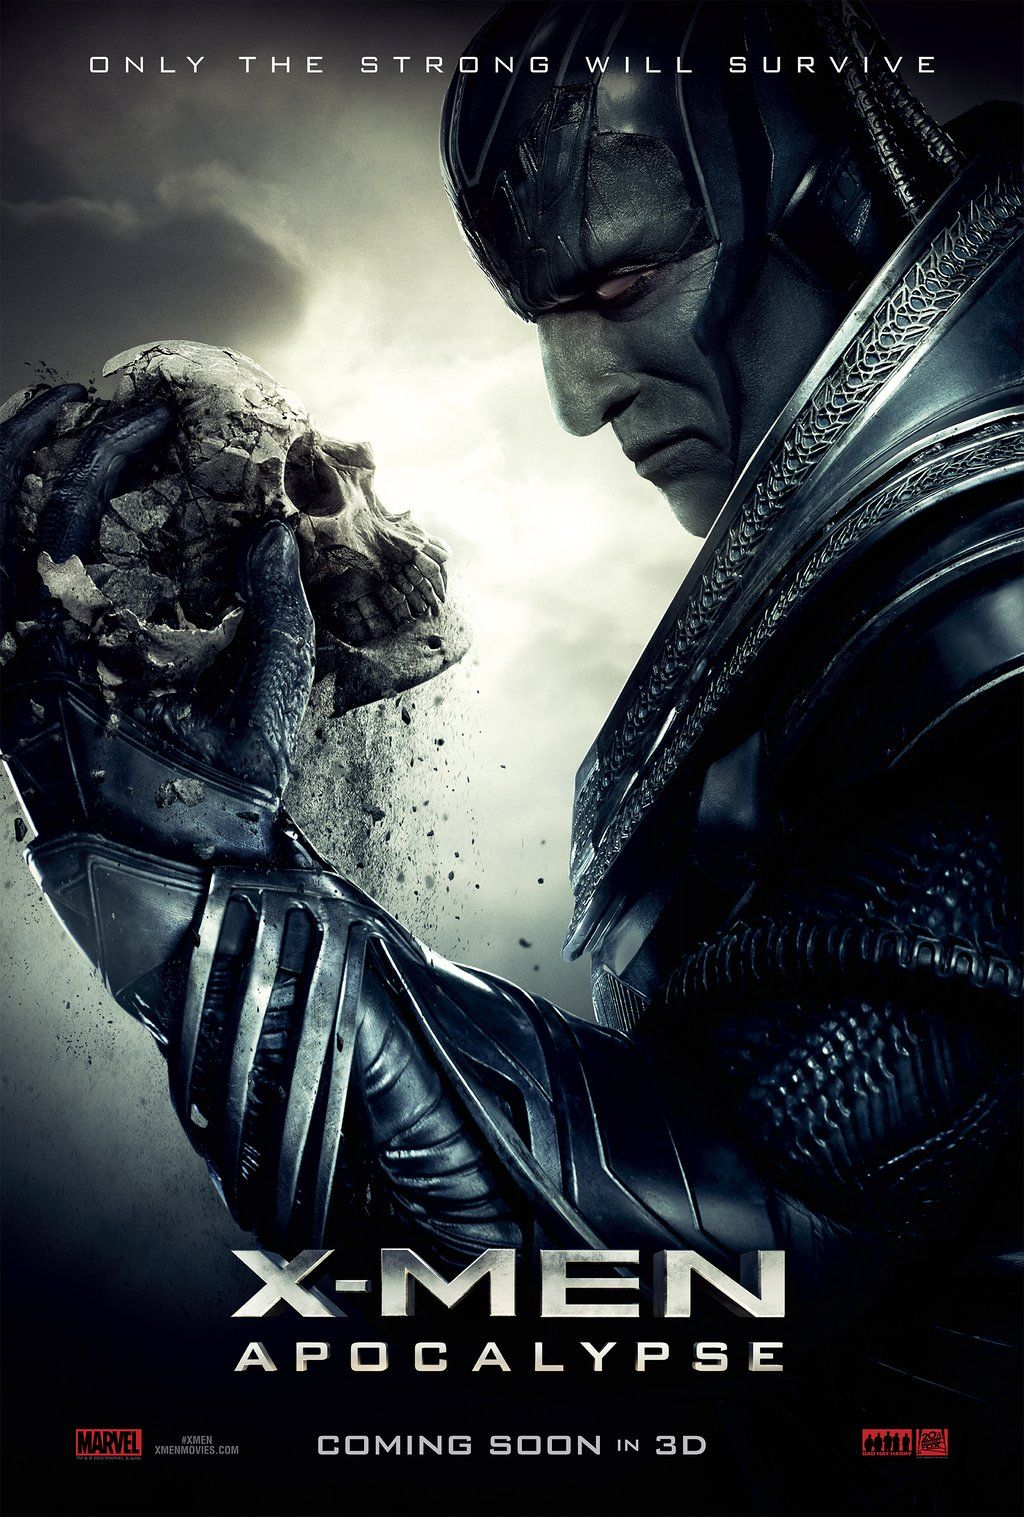 X-Men: Apocalypse: Simon Kinberg on Shared Universe, More | Collider